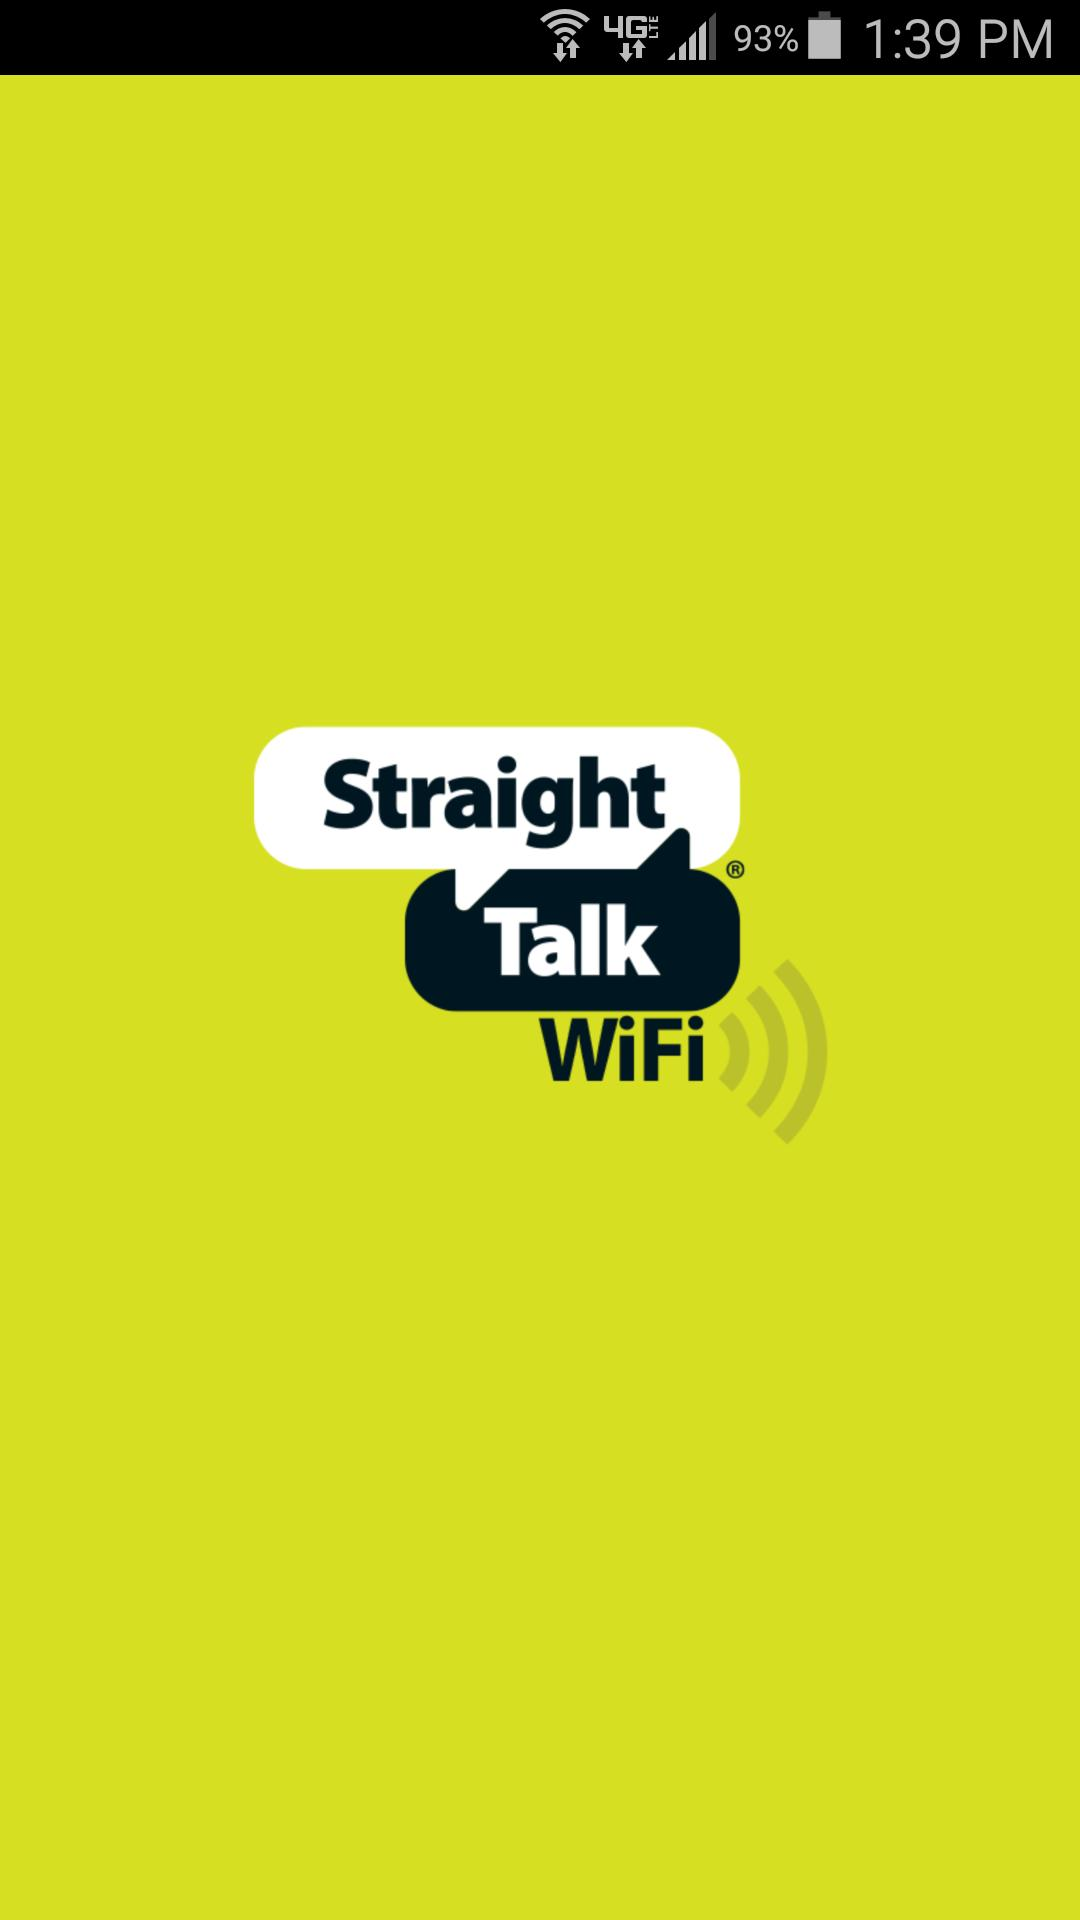 Straight Talk Wi-Fi for Android - APK Download